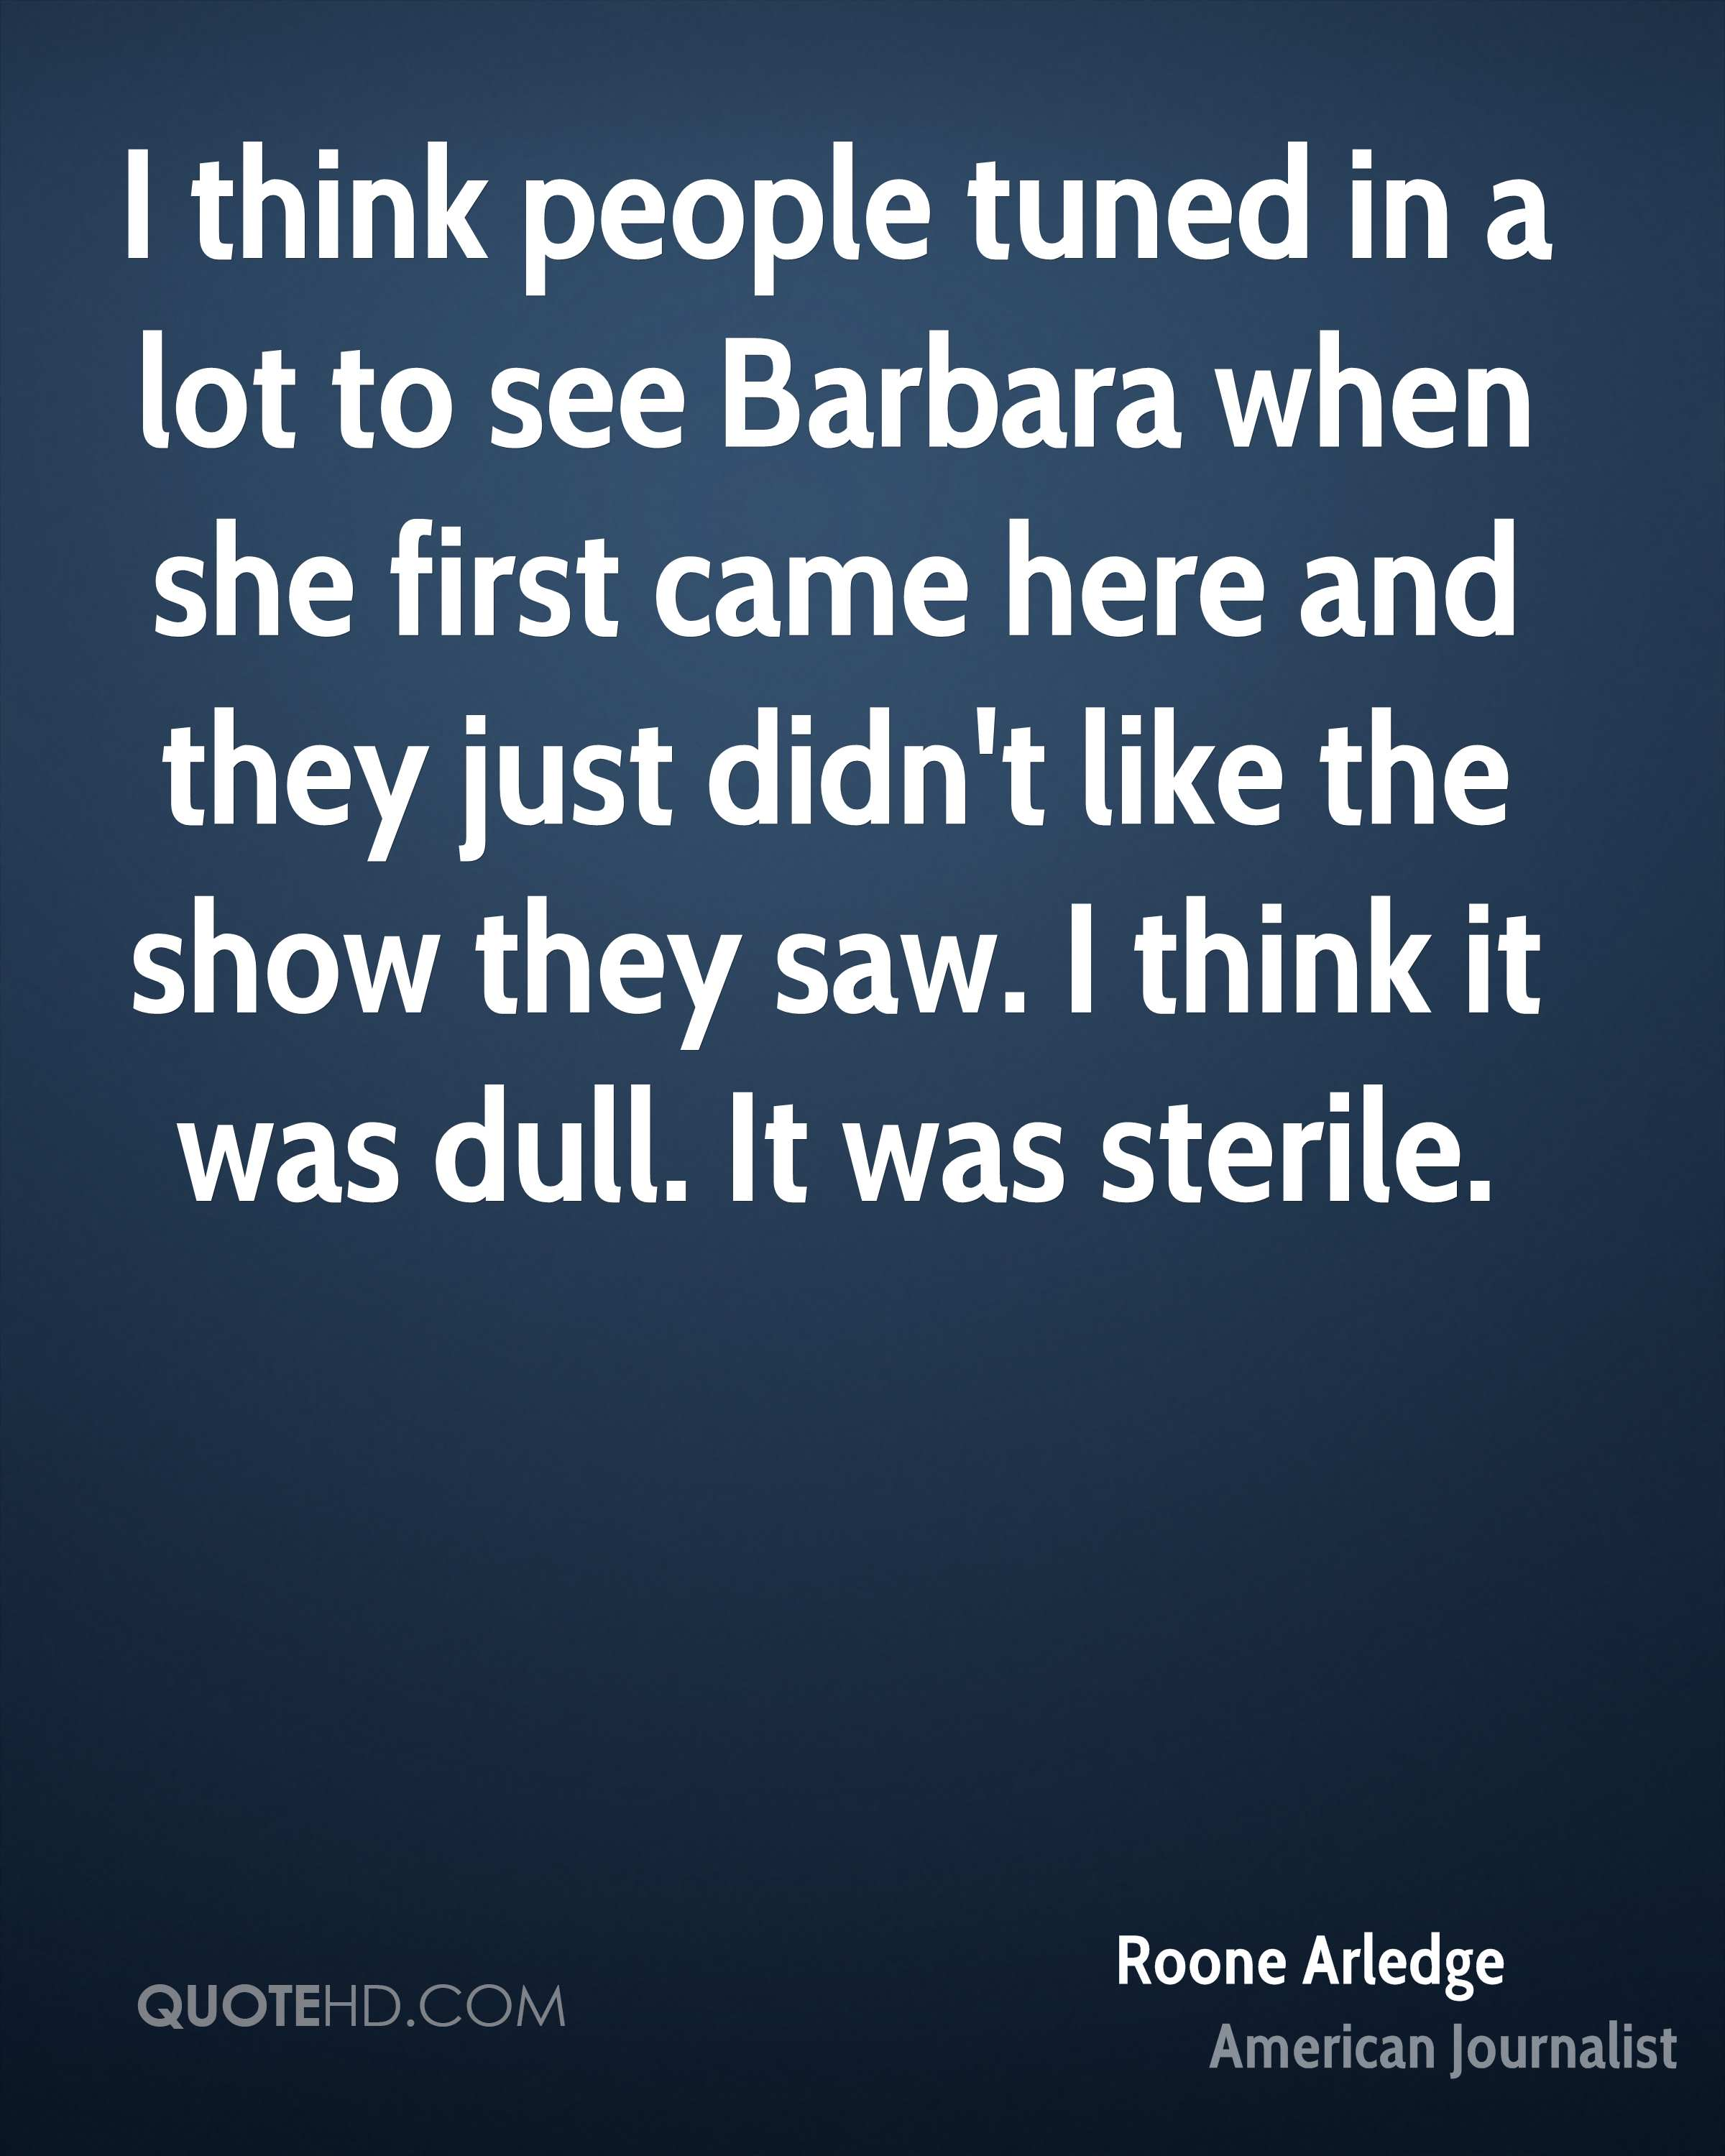 I think people tuned in a lot to see Barbara when she first came here and they just didn't like the show they saw. I think it was dull. It was sterile.